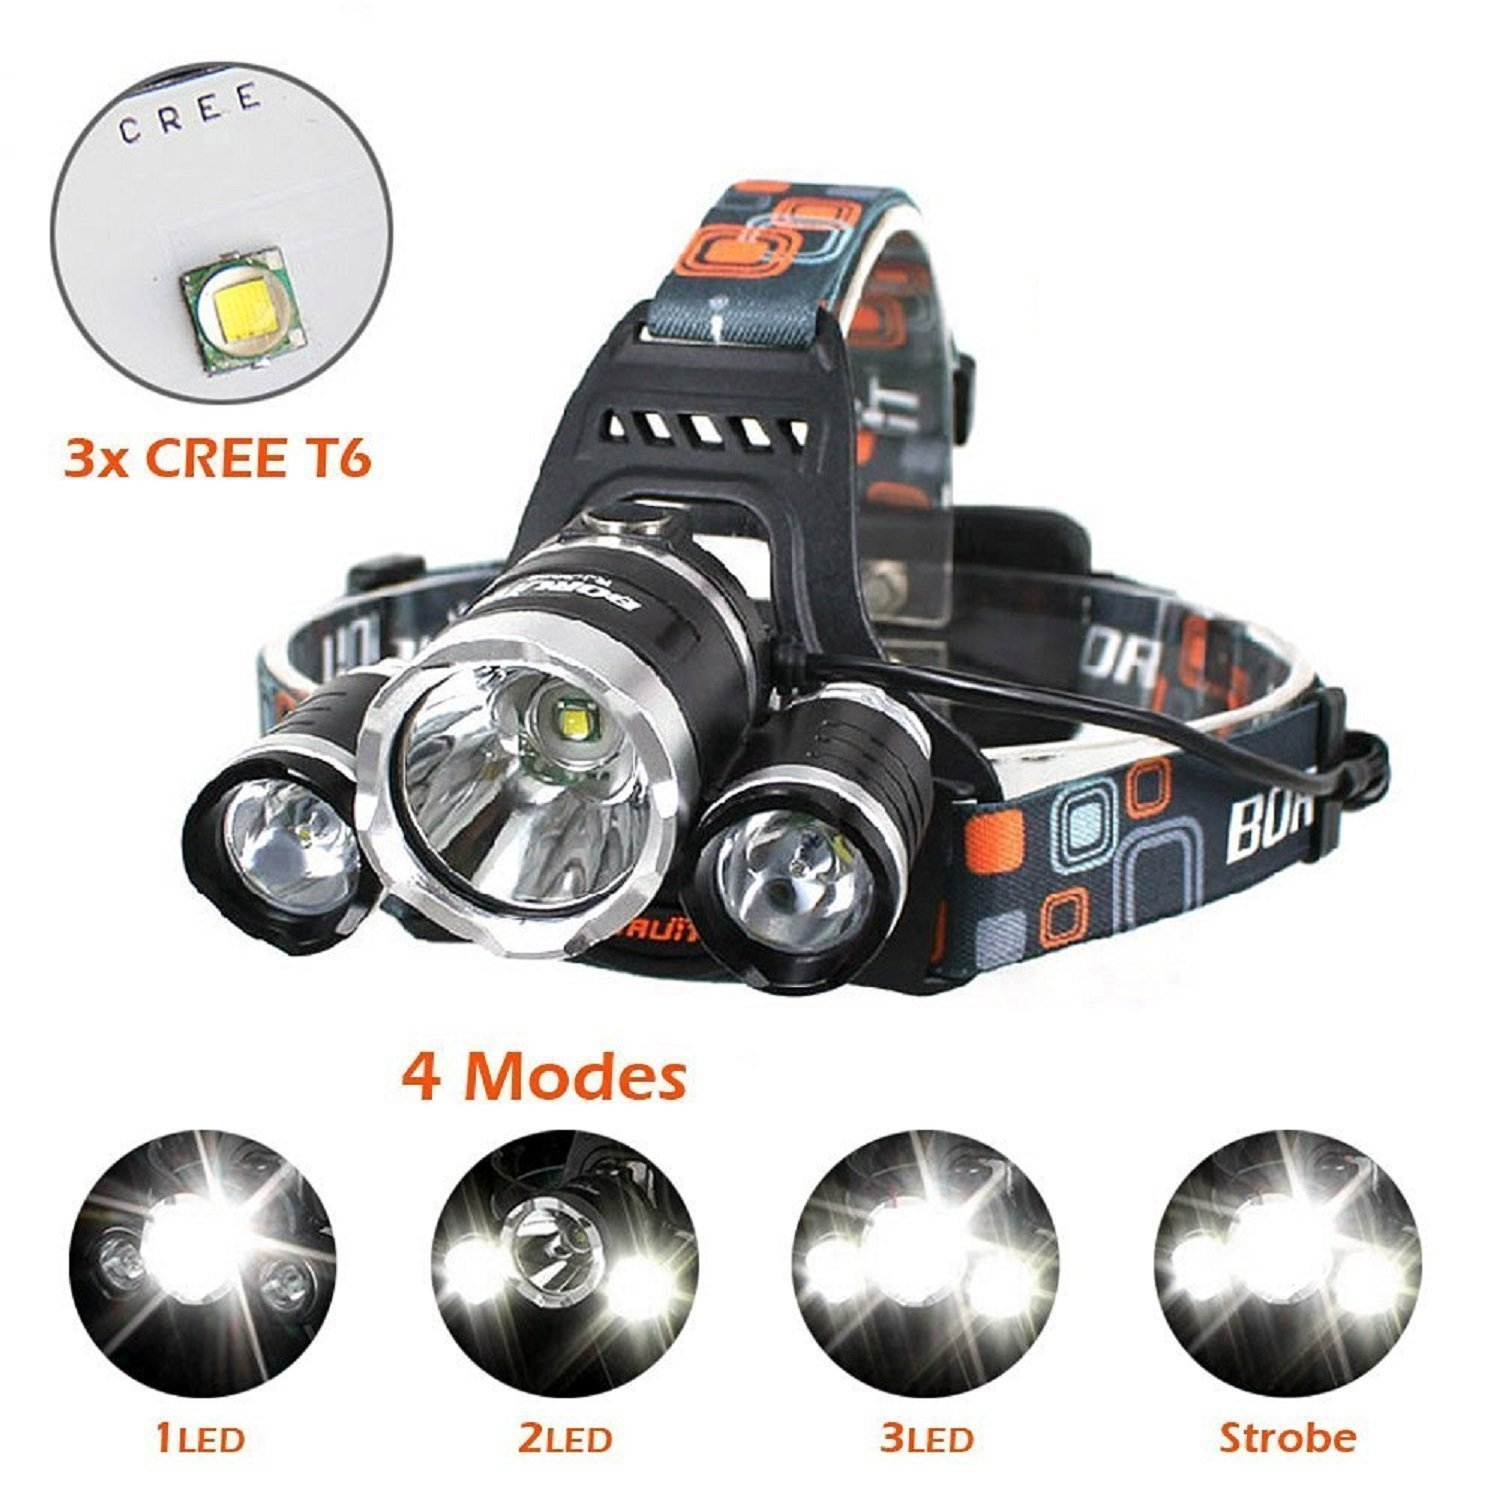 Brightest and Best LED Headlamp 9000 Lumen flashlight - Leading Technology CREE LED, Rechargeable 18650 headlight flashlights Waterproof Hard Hat Light,Outdoor & Indoor Fishing Camping headlamps by Ankeca (Image #1)